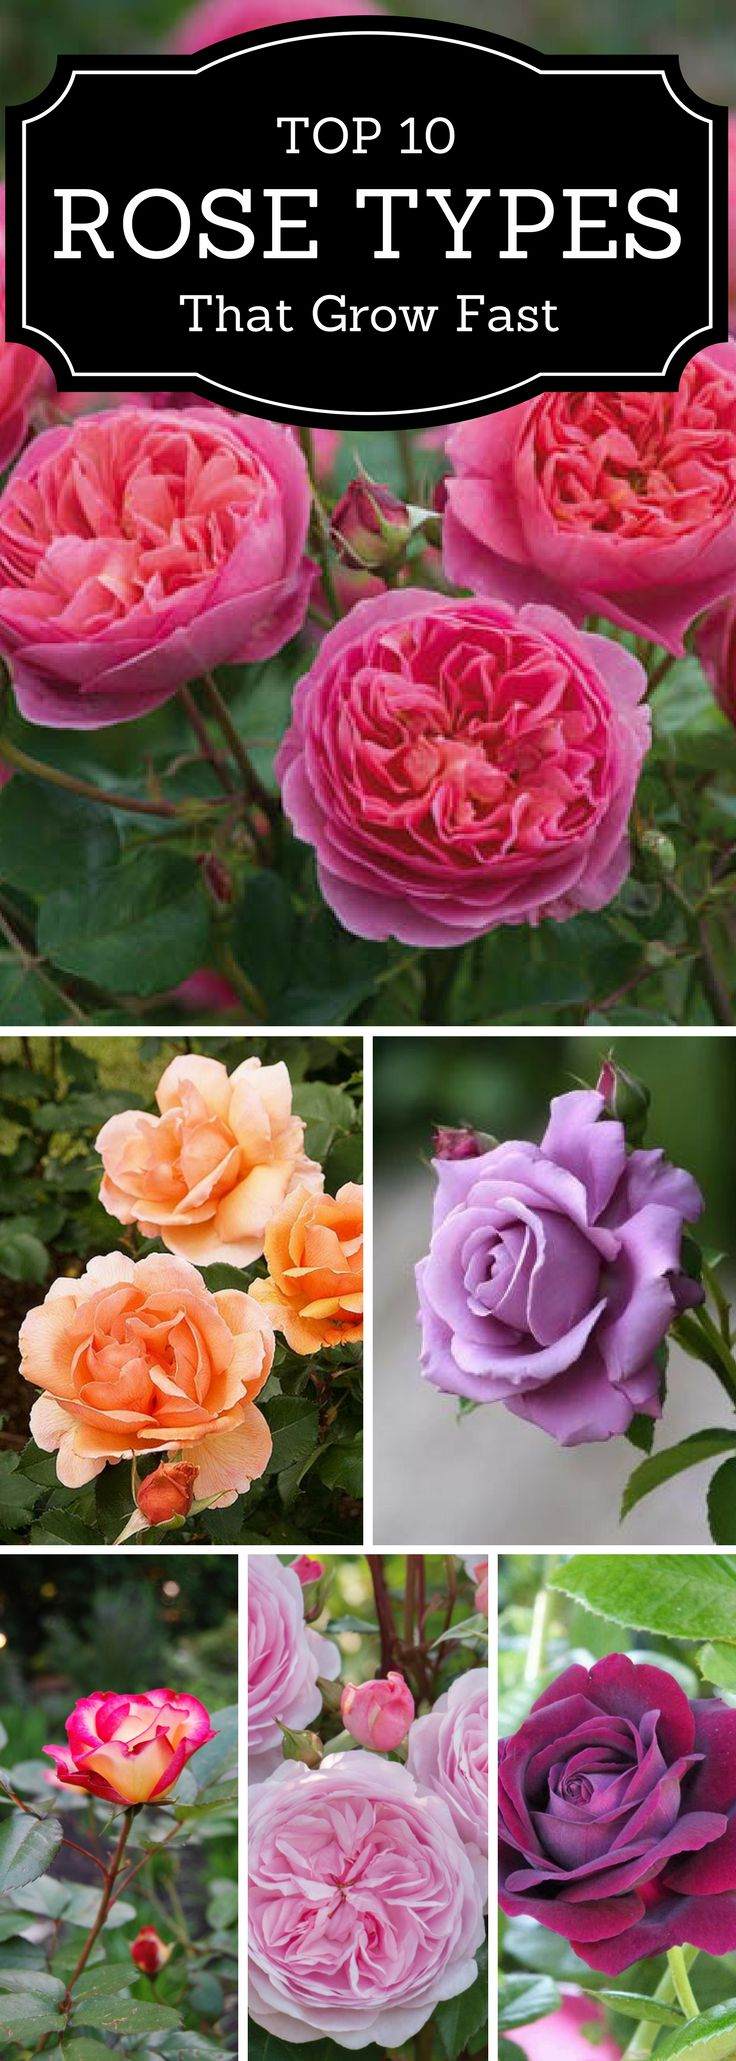 Backyard rose garden - Top 10 Types Of Roses You Would Love To Have In Your Garden